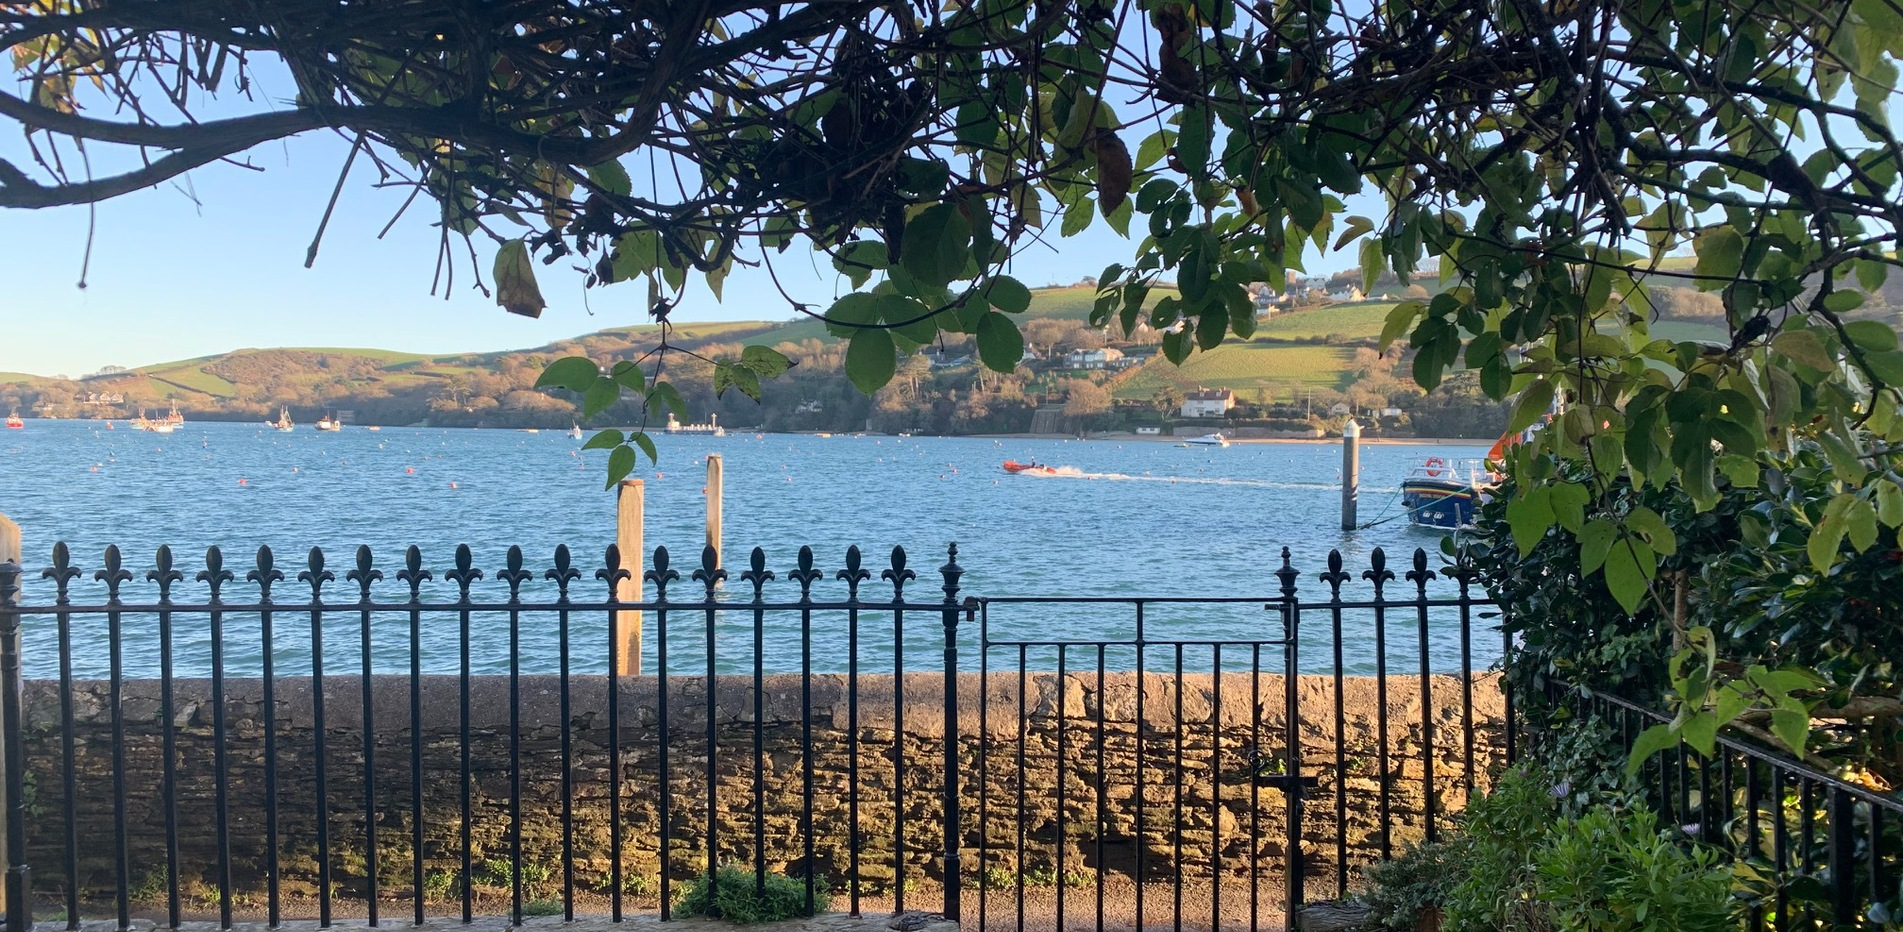 Merlins racing off Bolt Head, Salcombe, Devon